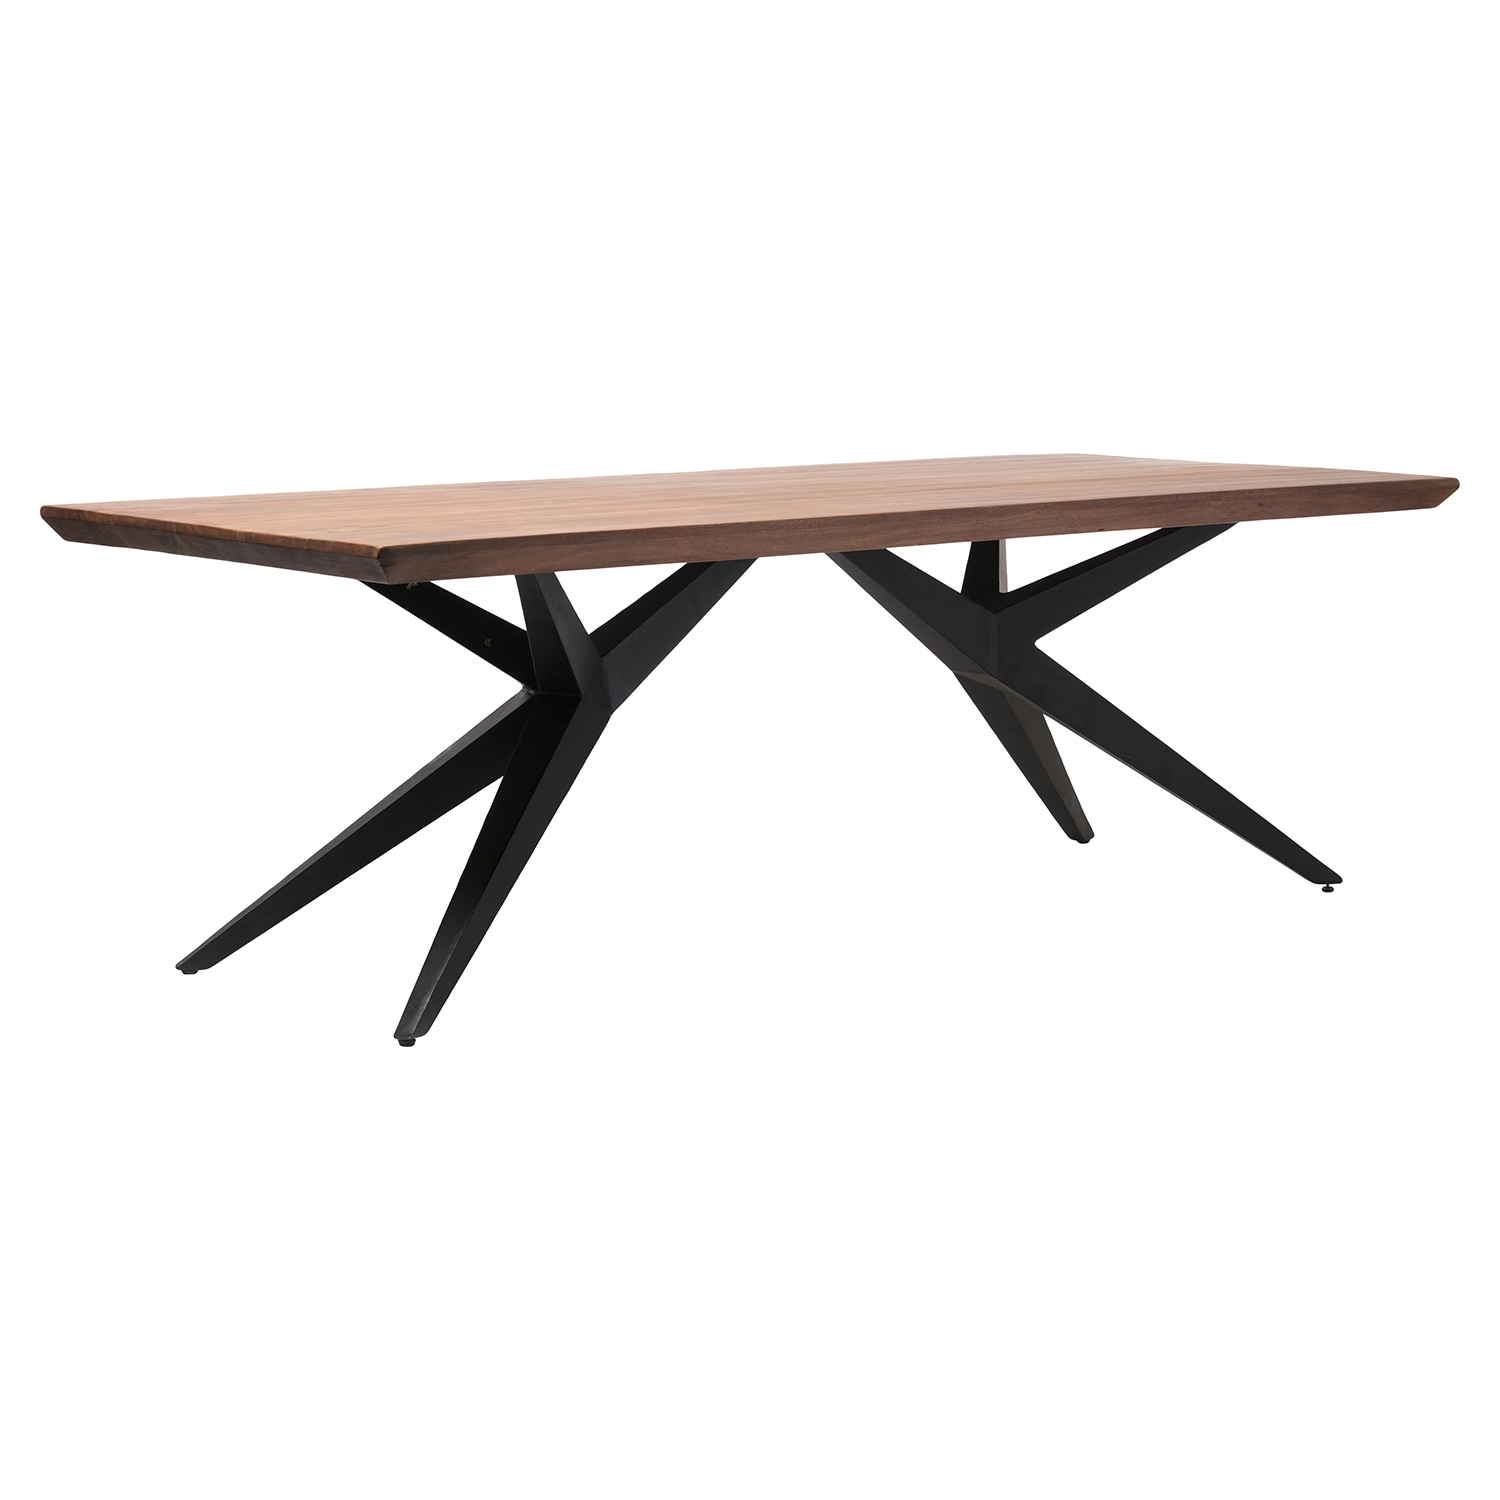 Air Loft Rectangular Dining Table - Brown - MOES-LX-1007-03